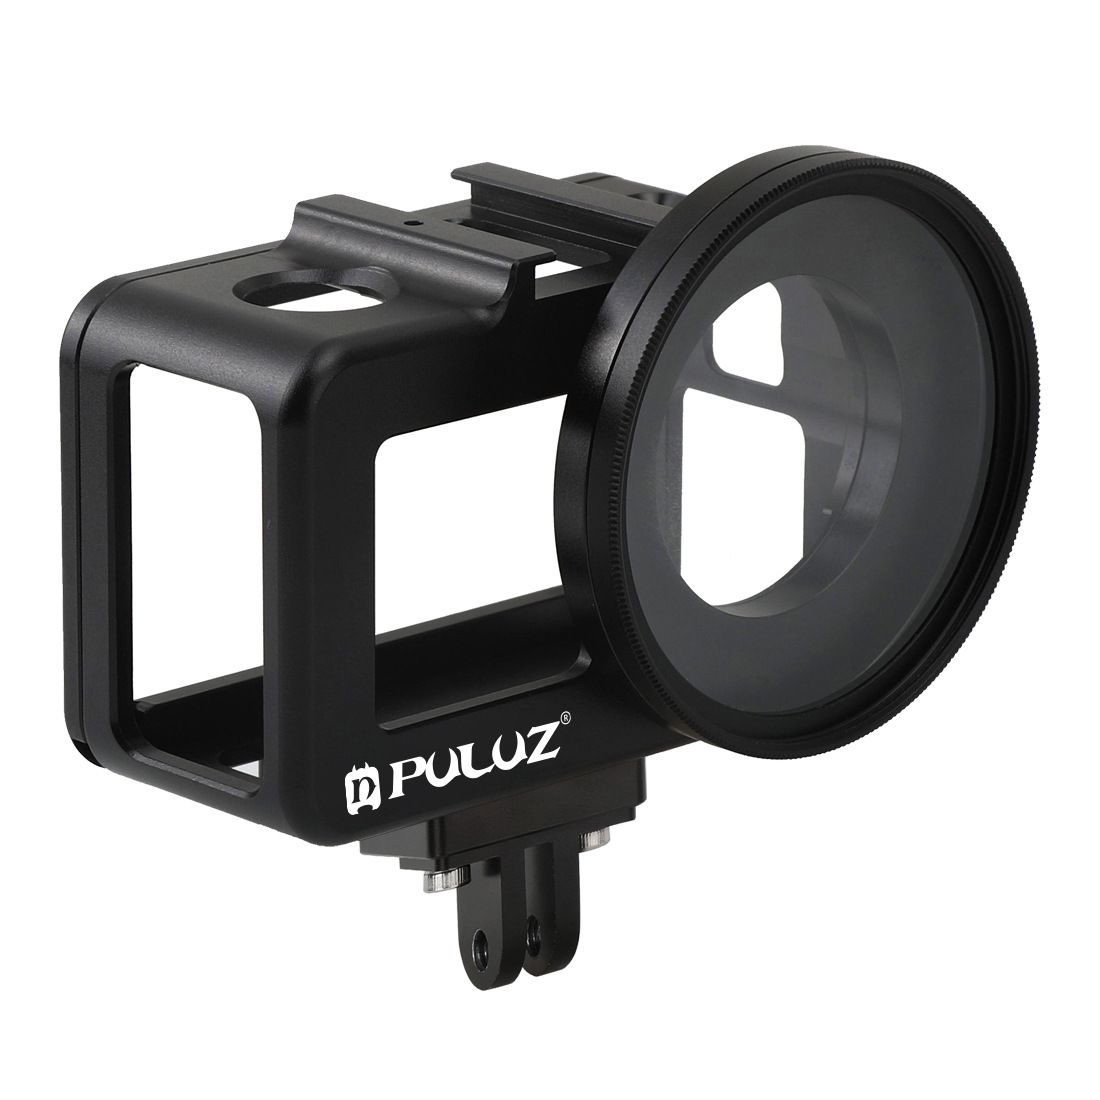 PULUZ CNC Aluminum Alloy Protective Cage Case with 52mm UV Lens for DJI Osmo Action Camera Accessories black